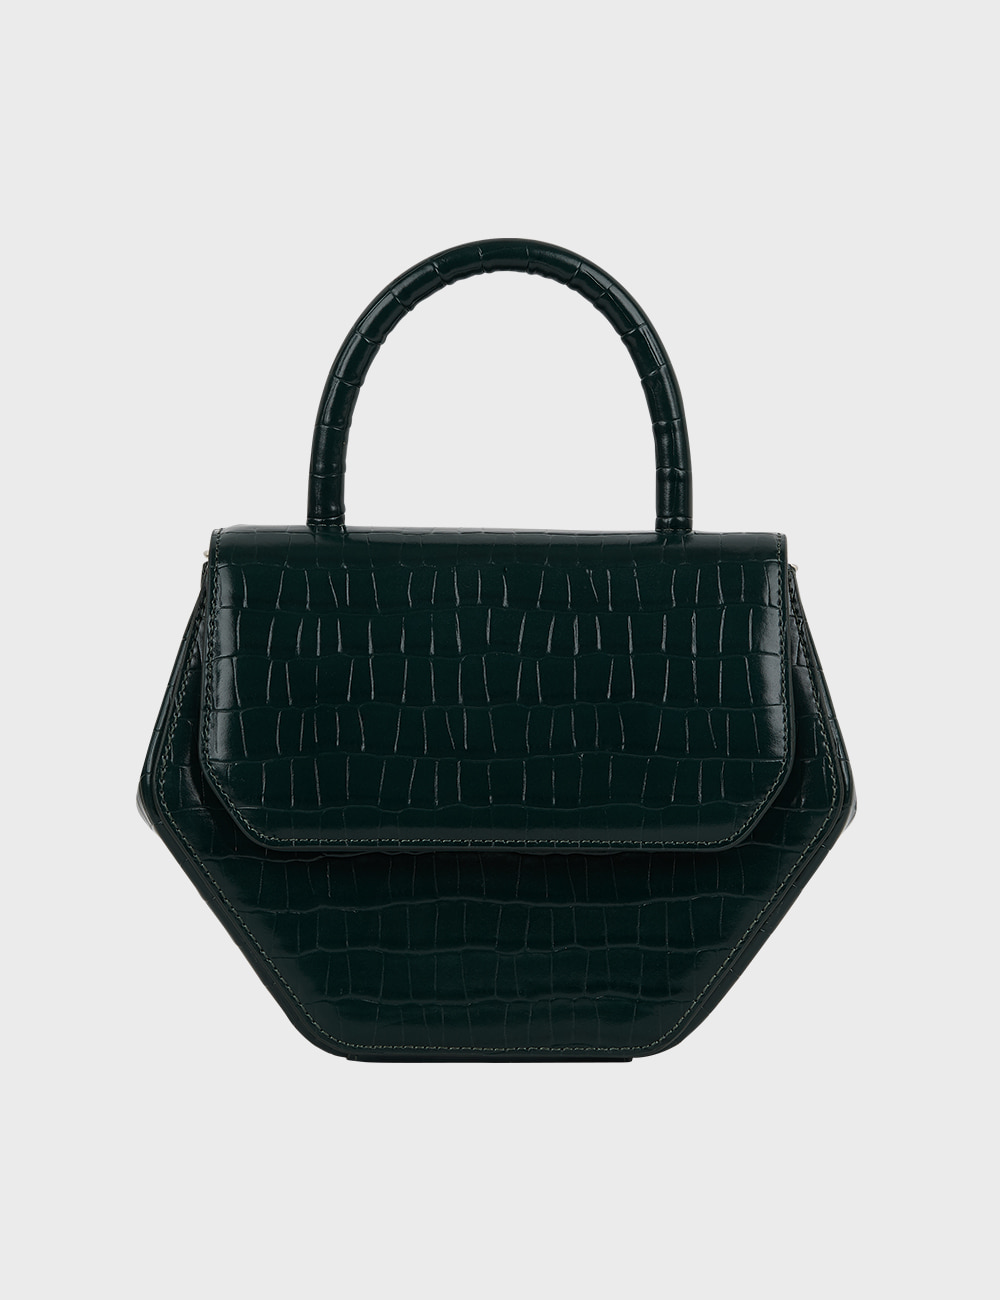 MAISON246,[메탈체인증정] 246 MAGOT MEDIUM CROCODILE BAG - DEEP GREEN,246